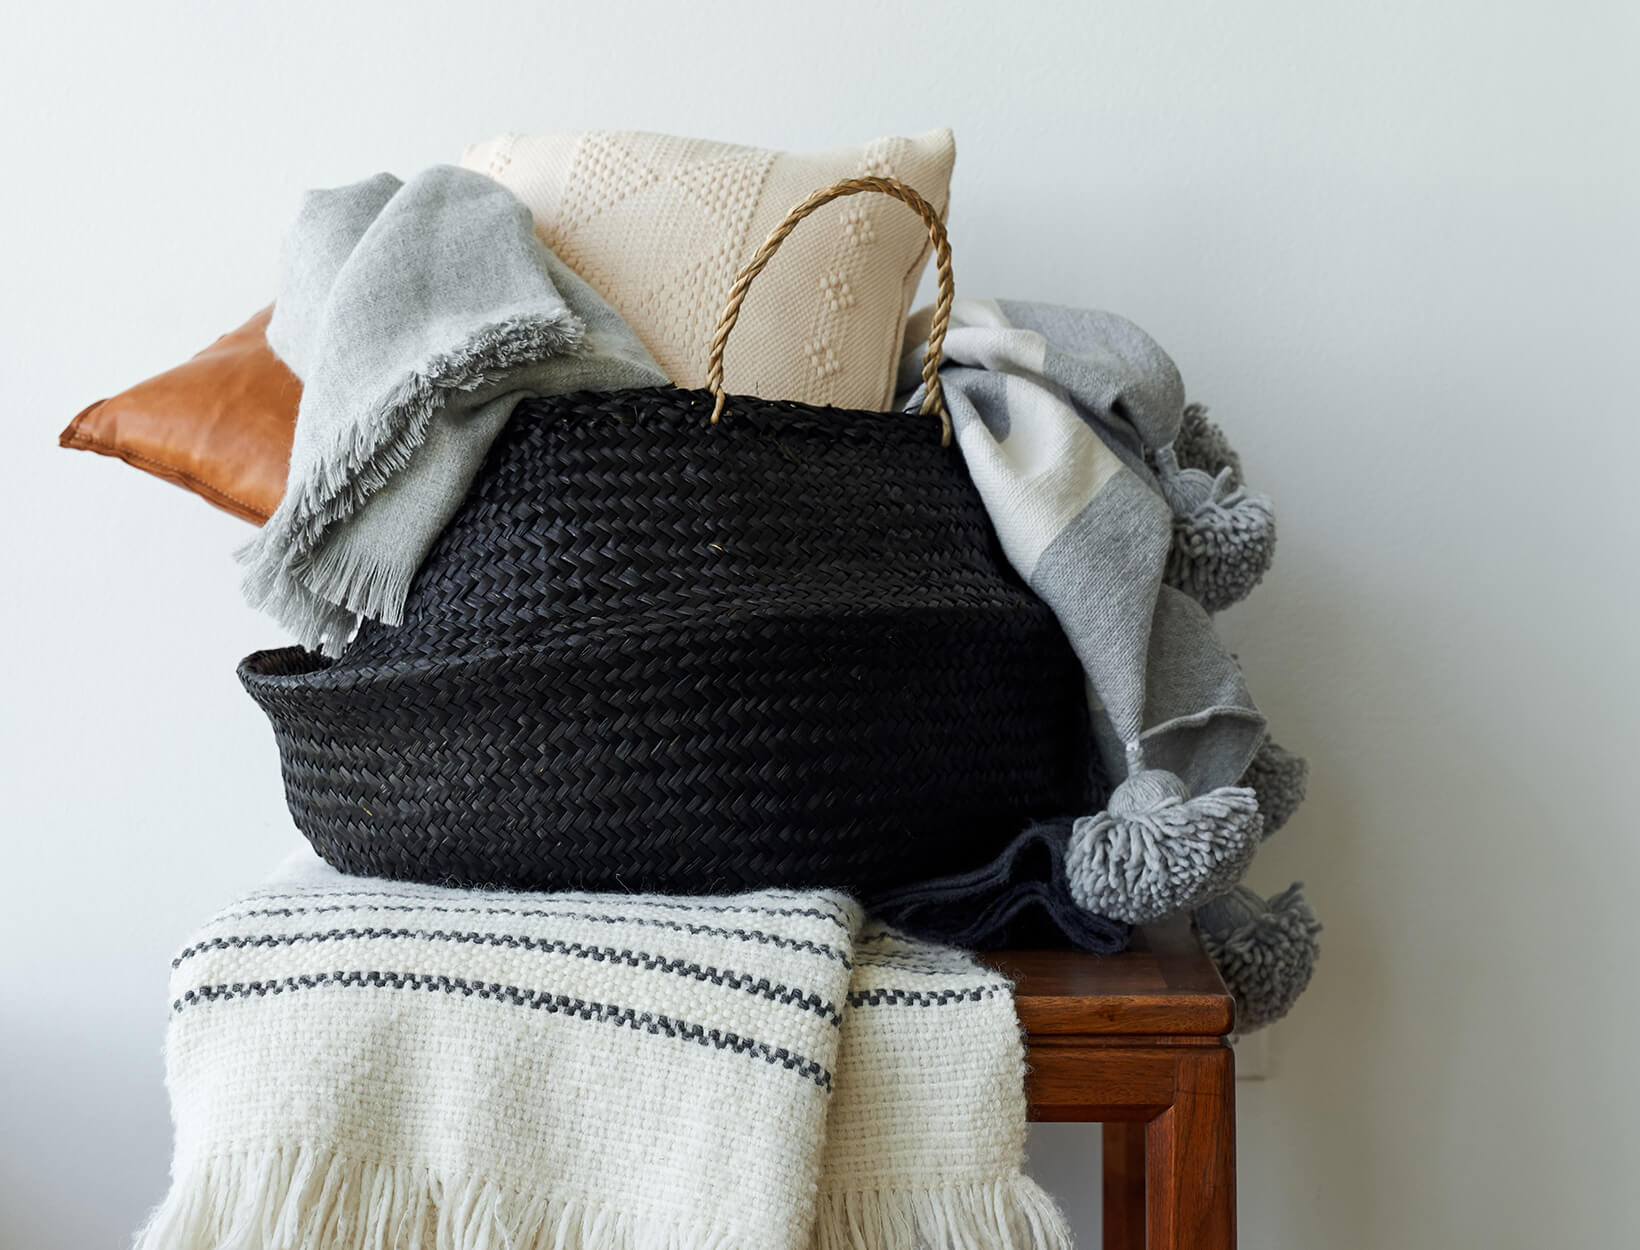 10 Ways to Make Houseguests More Comfortable